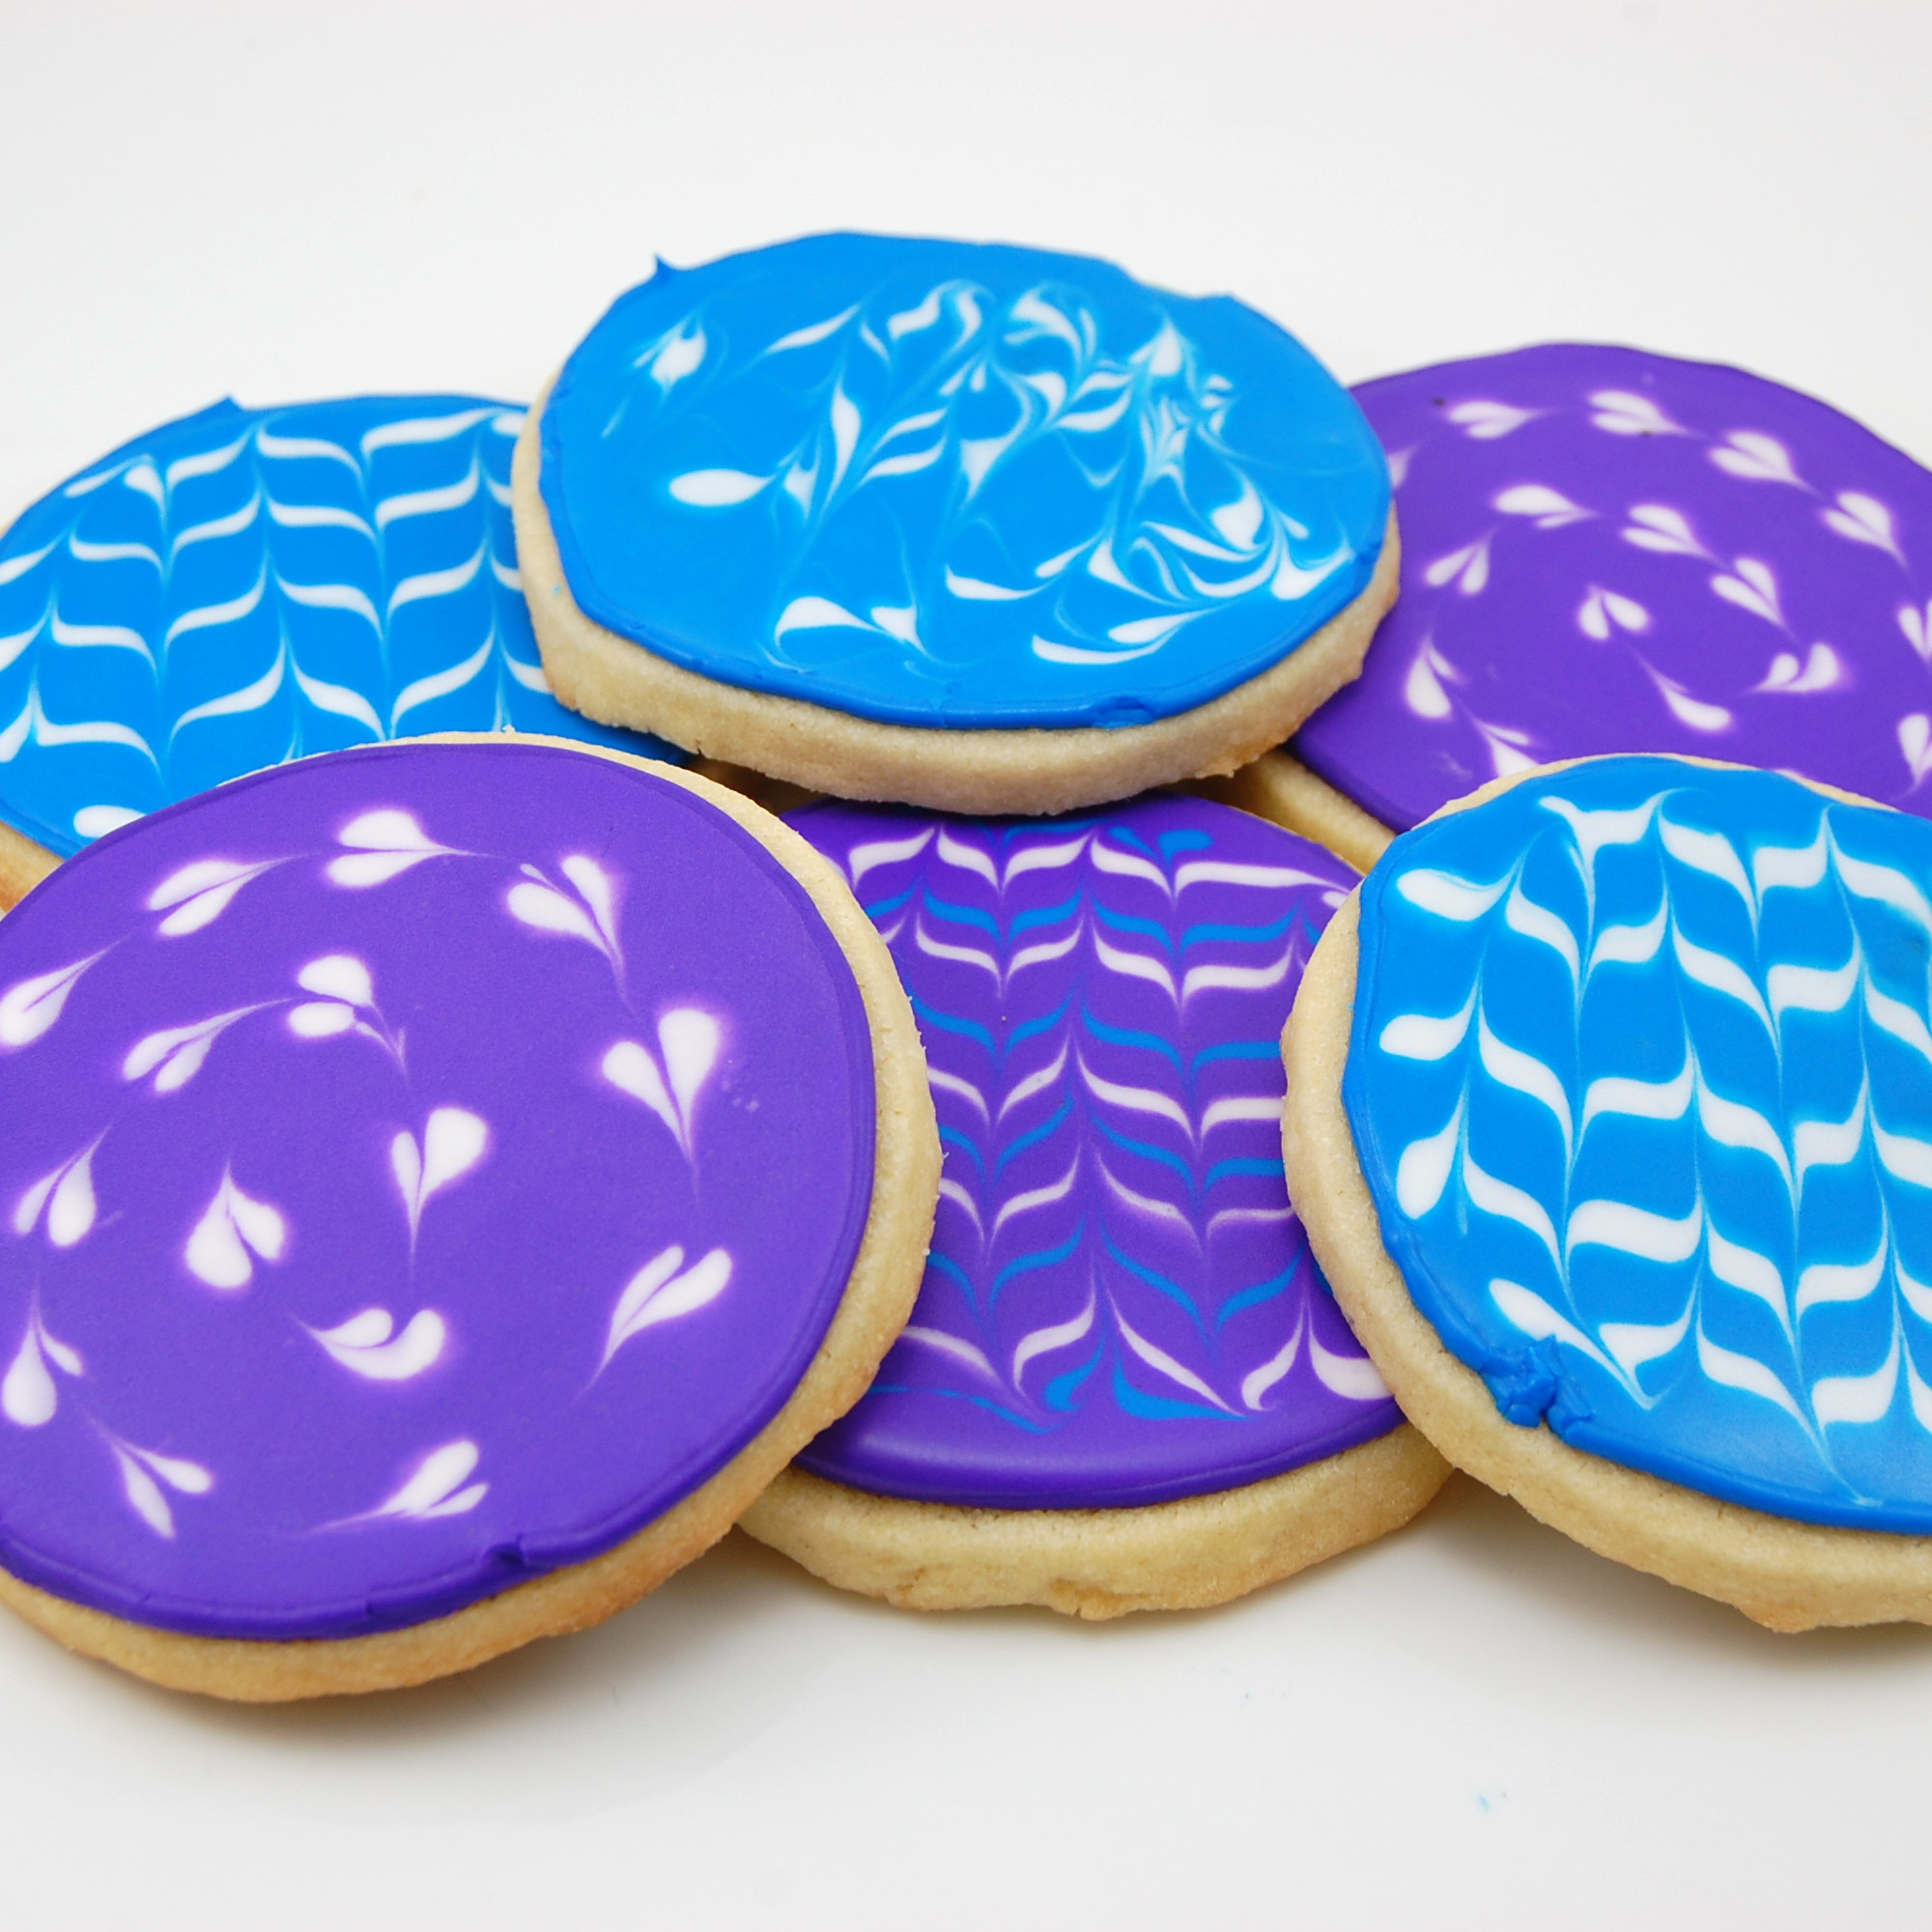 Royal Icing Recipe For Sugar Cookies  How to Decorate with Royal Icing